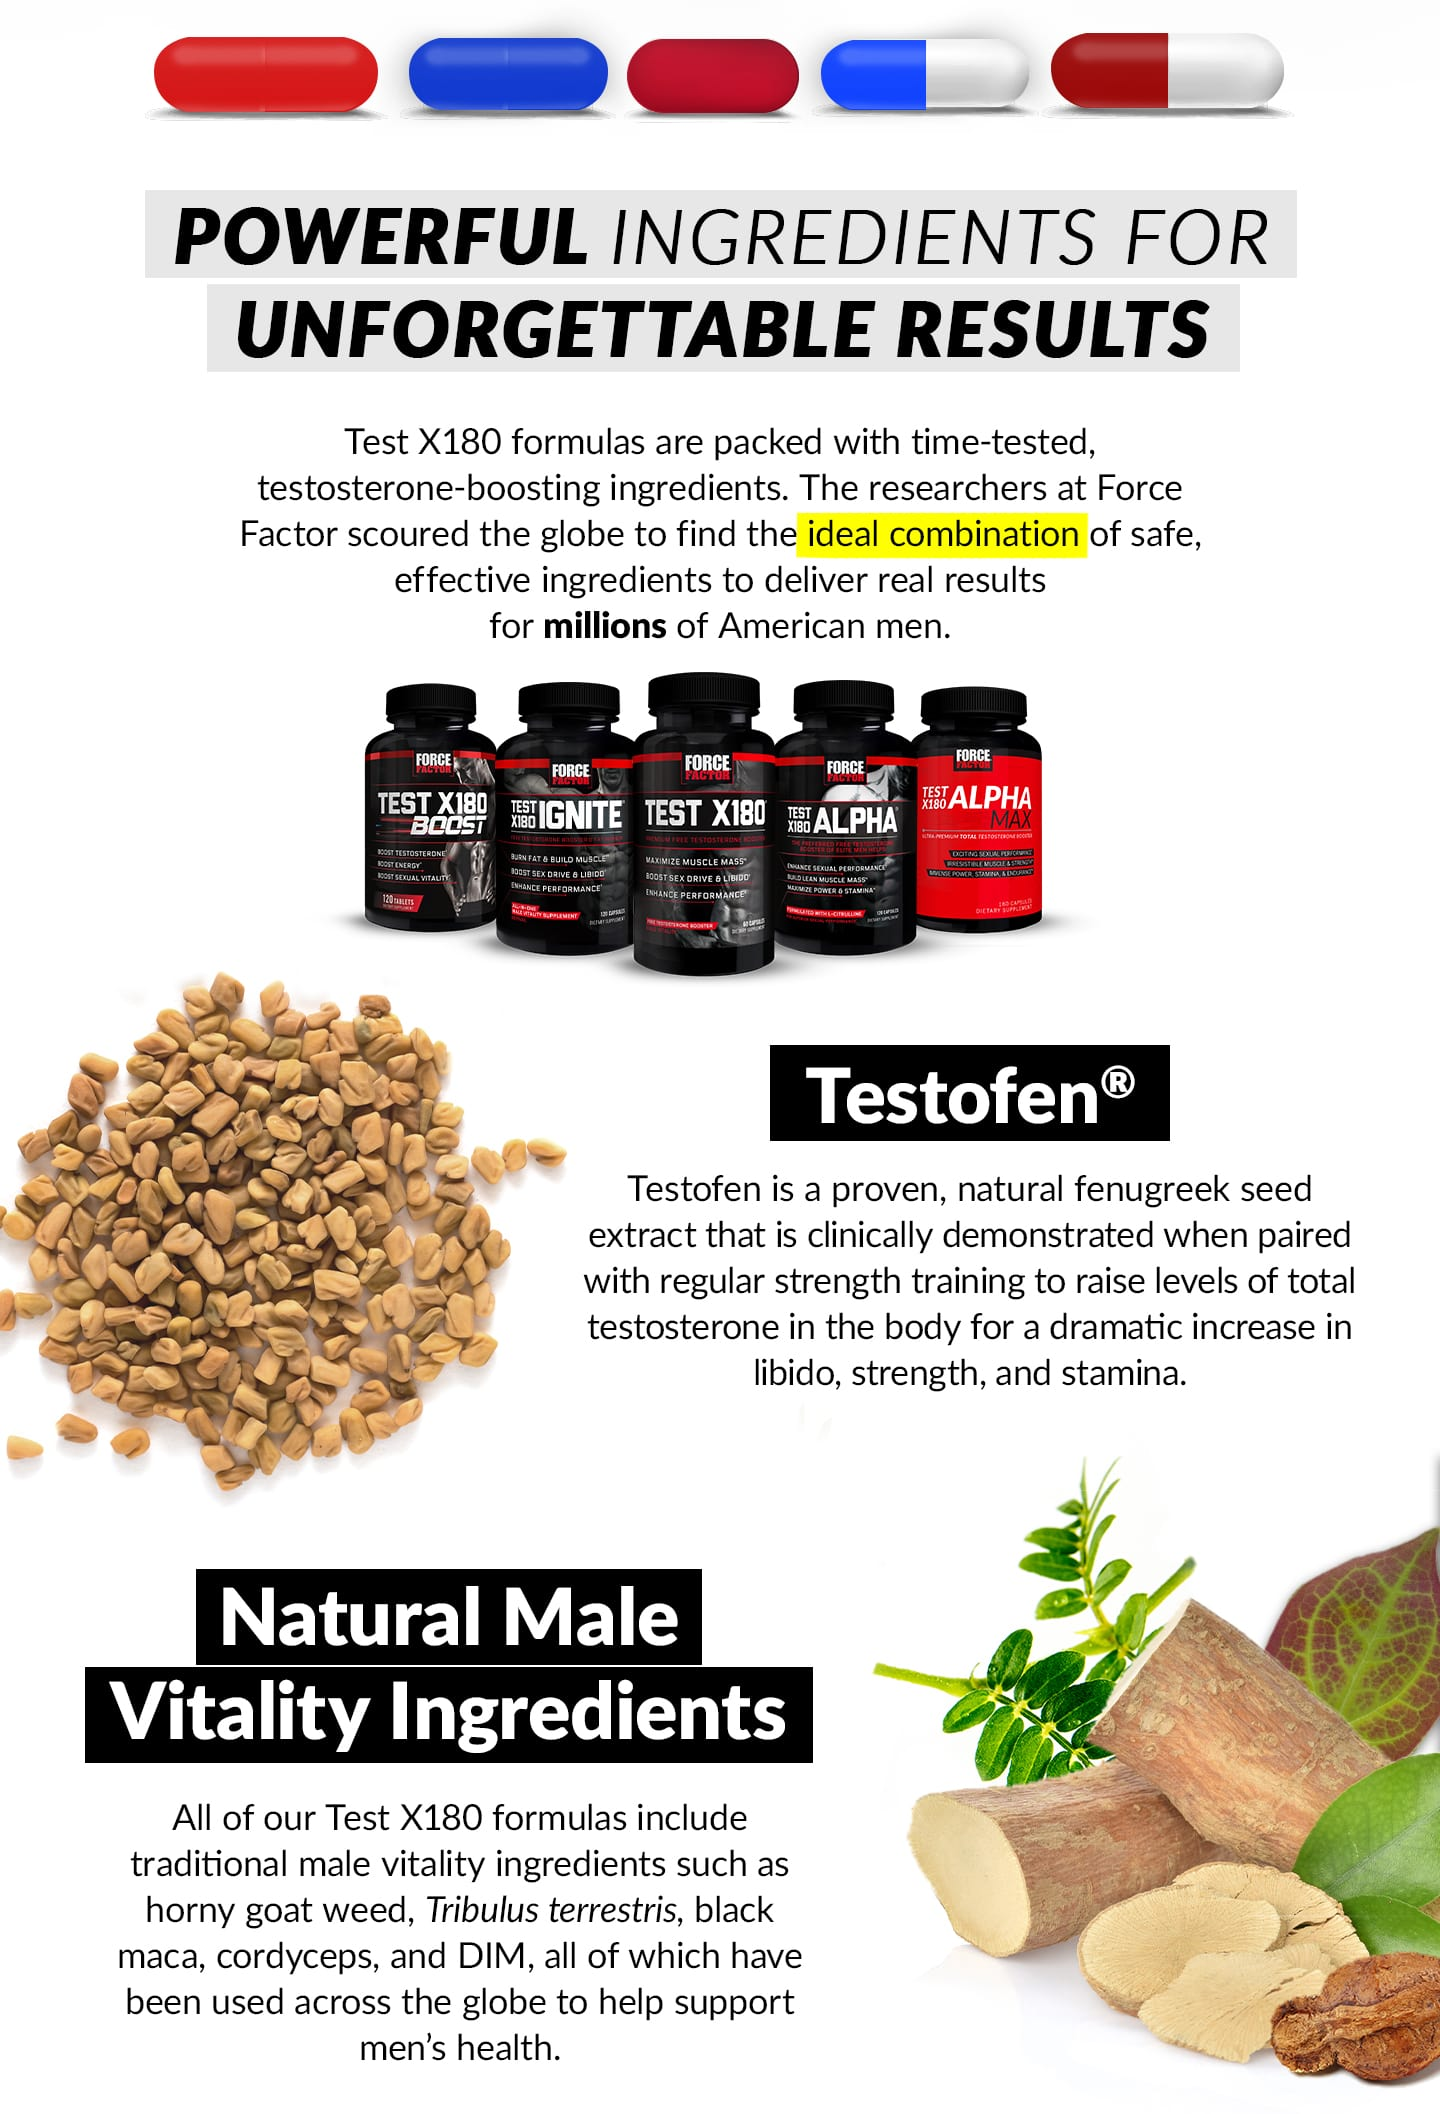 POWERFUL INGREDIENTS FOR UNFORGETTABLE RESULTS. Test X180 formulas are packed with time-tested, testosterone-boosting ingredients. The researchers at Force Factor scoured the globe to find the ideal combination of safe, effective ingredients to deliver real results for millions of American men. Testofen® - Testofen is a proven, natural fenugreek seed extract that is clinically demonstrated when paired with regular strength training to raise levels of total testosterone in the body for a dramatic increase in libido, strength, and stamina. Natural Male Vitality Ingredients - All of our Test X180 formulas include traditional male vitality ingredients such as horny goat weed, tribulus terrestris, black maca, cordyceps, and DIM, all of which have been used across the globe to help support men's health.